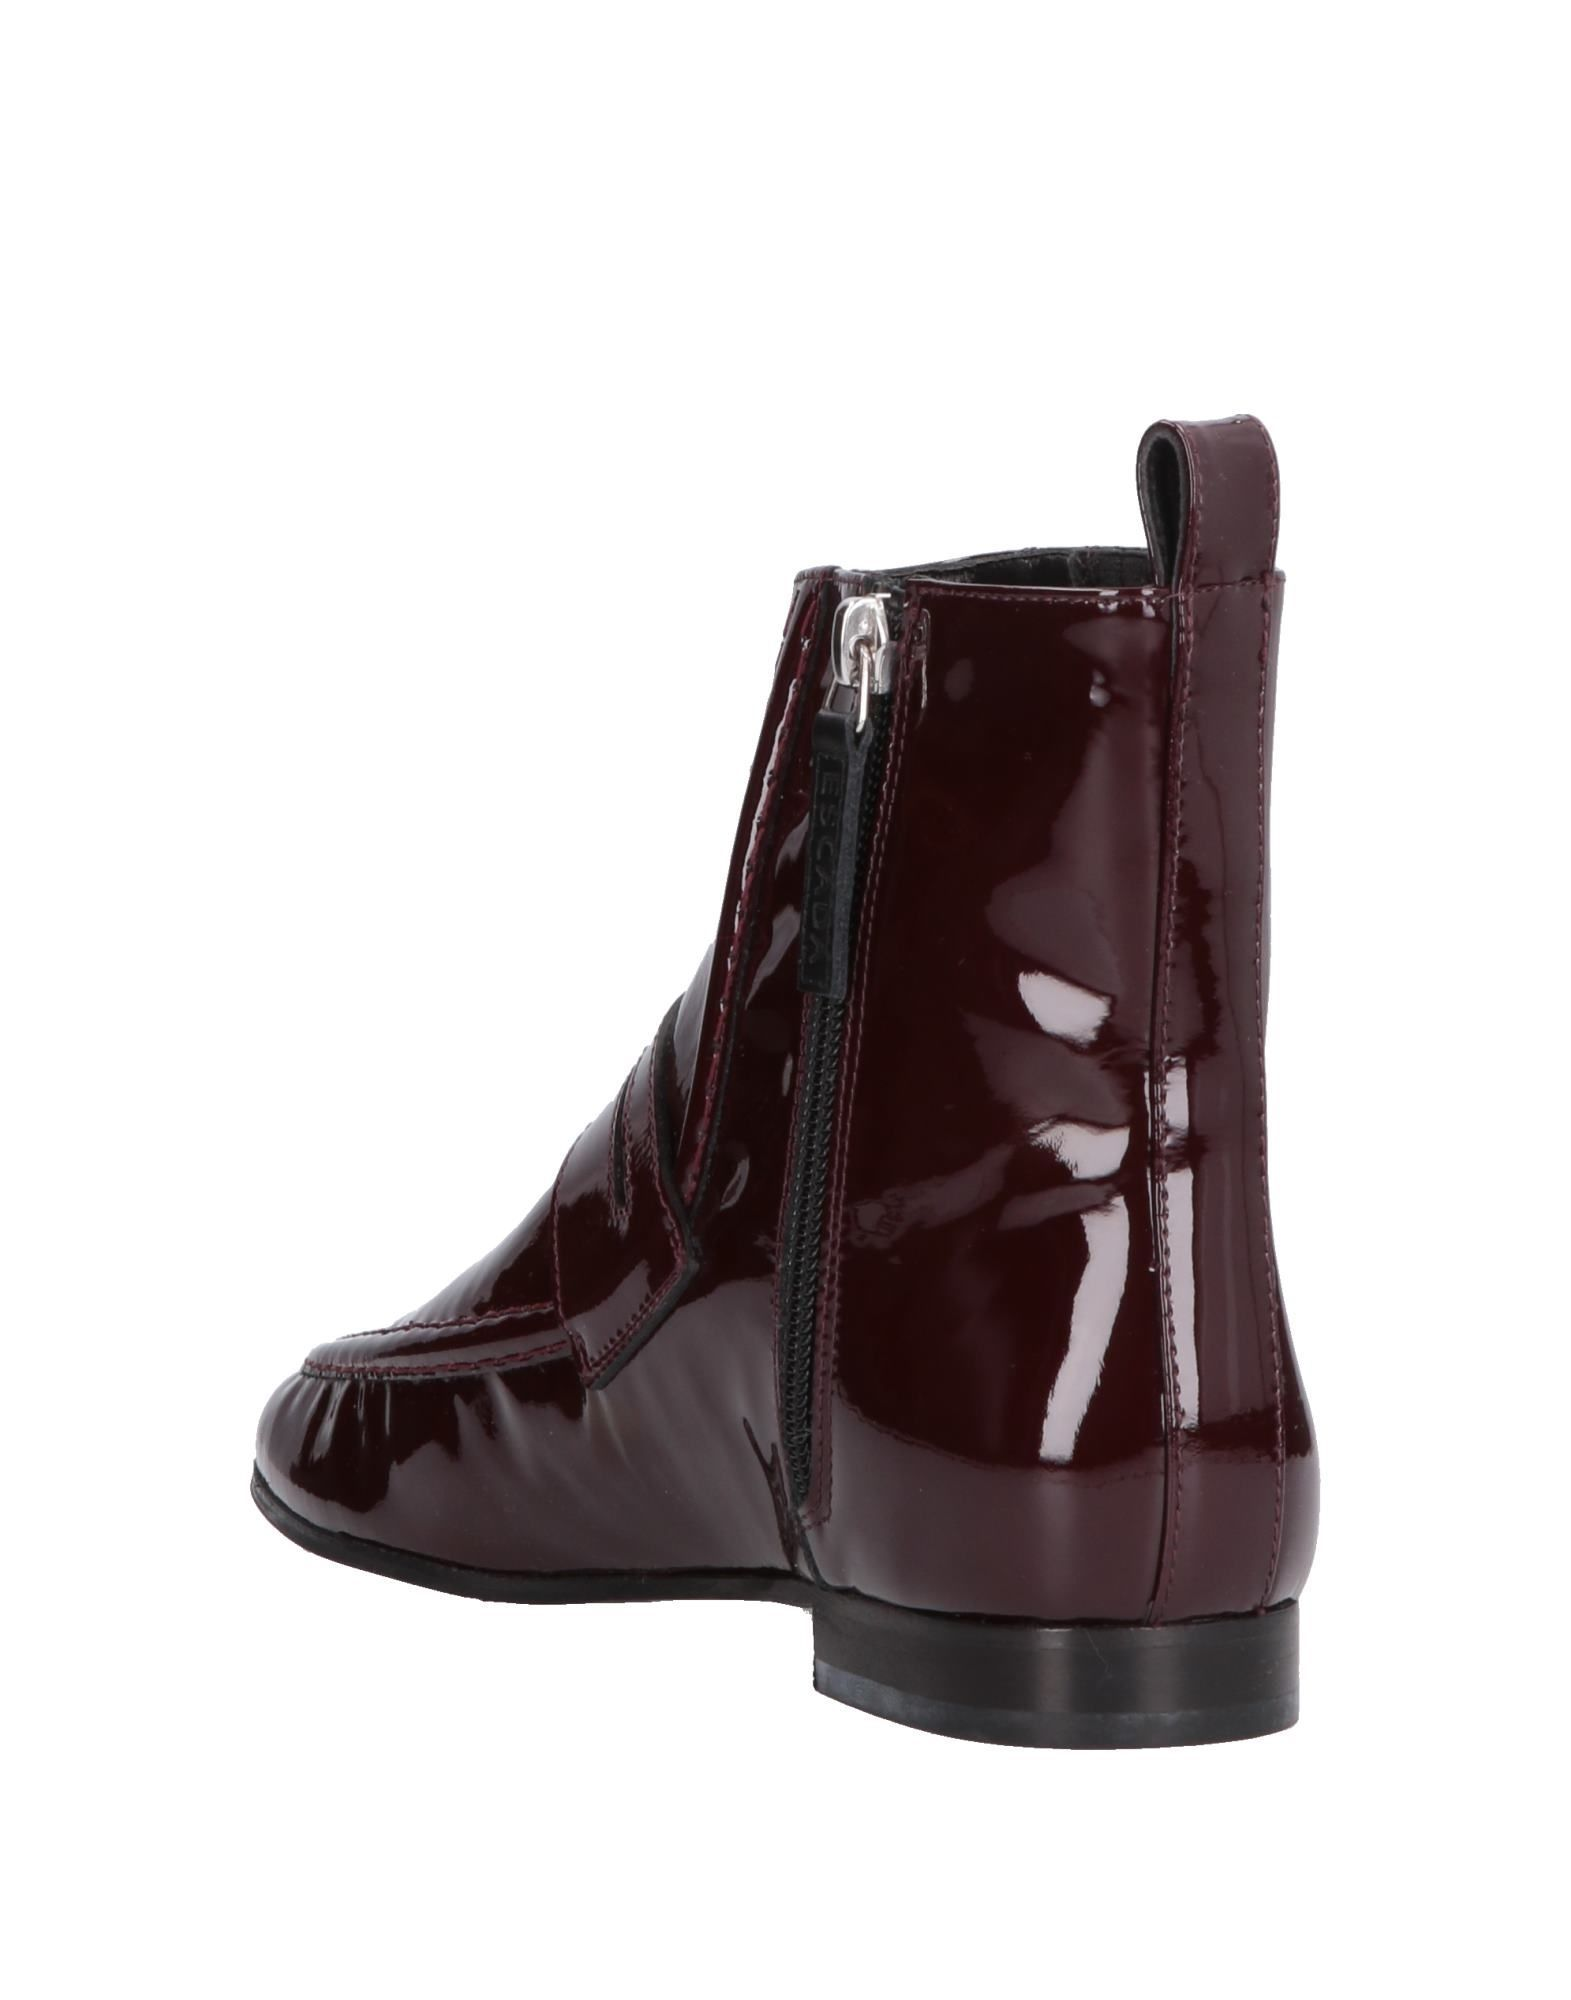 Escada Sport Maroon Calf Leather Ankle Boots